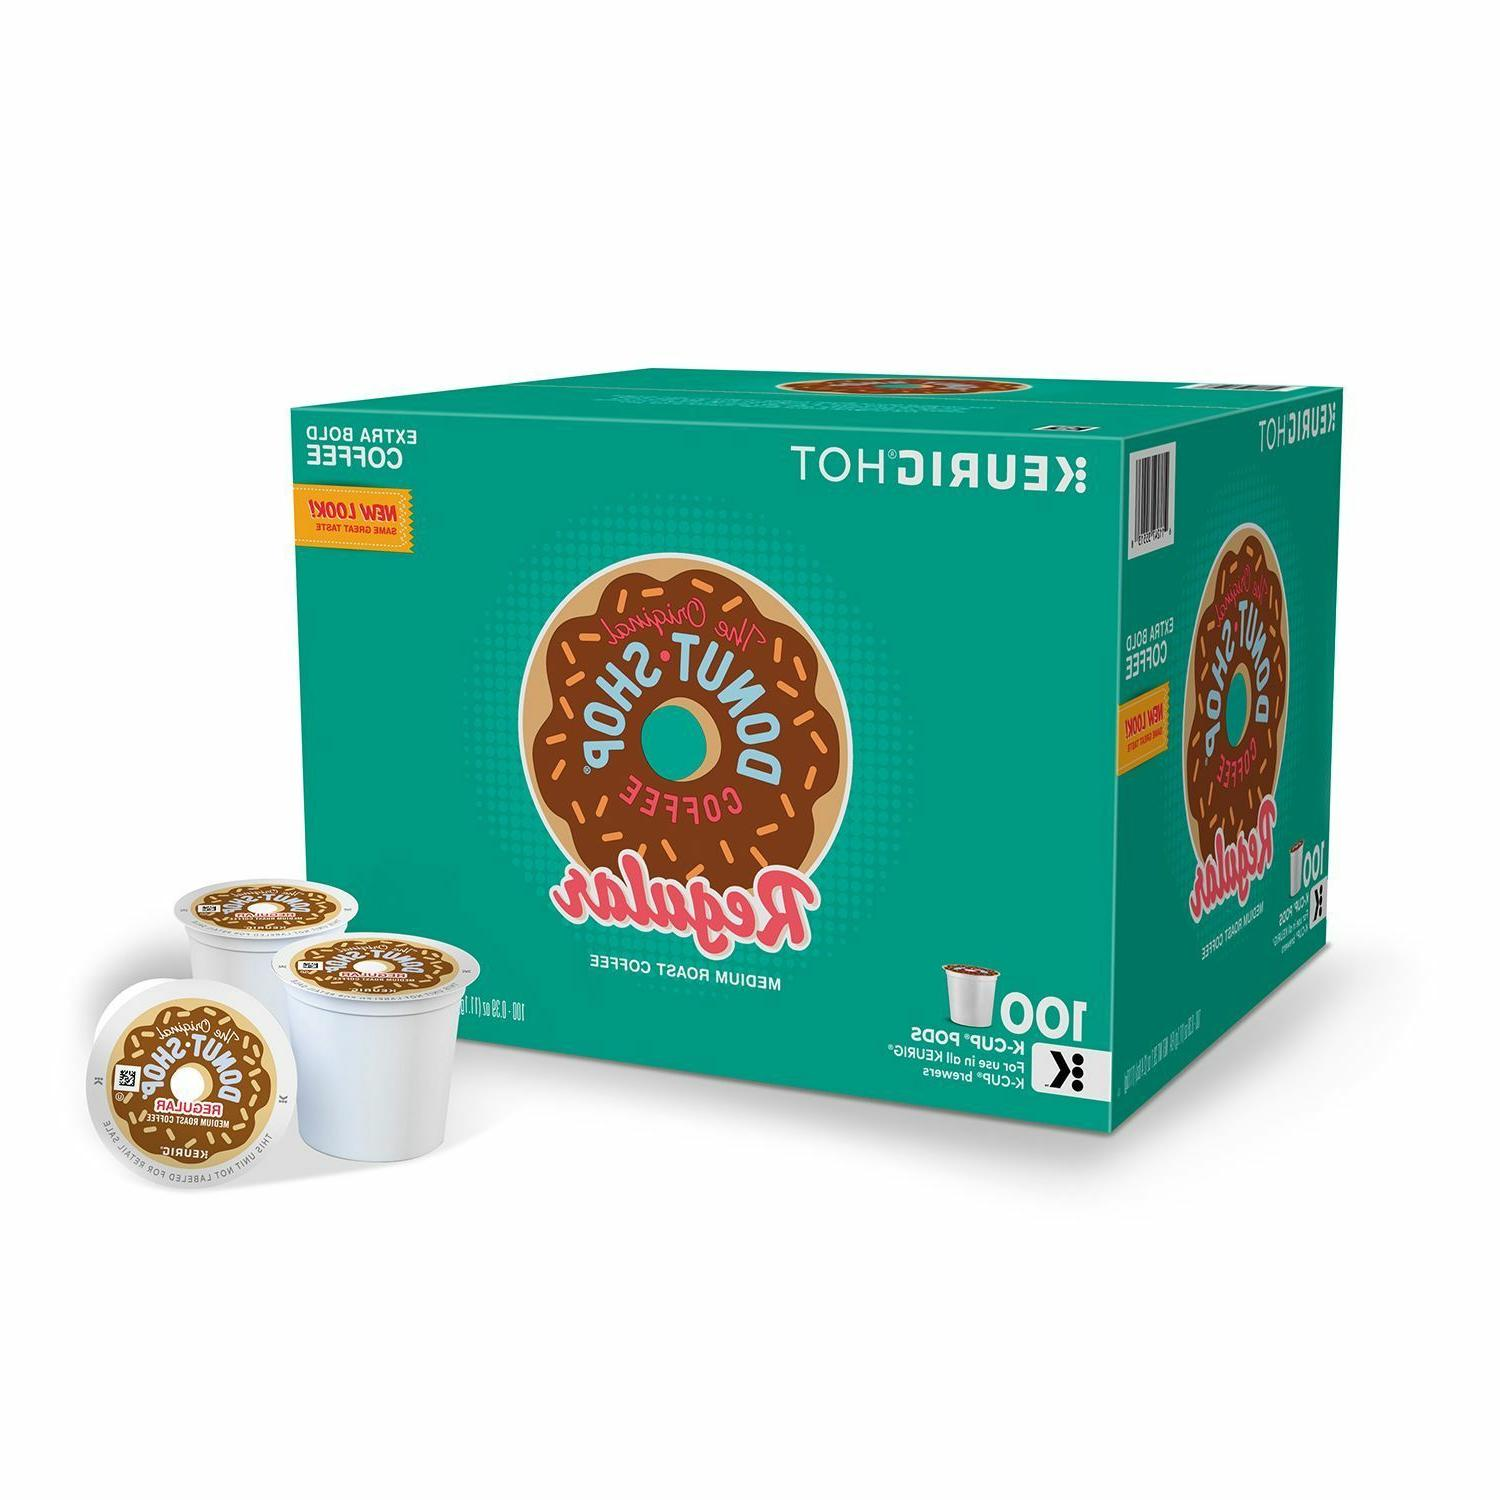 The Original Regular Keurig K-Cups, 100-Count